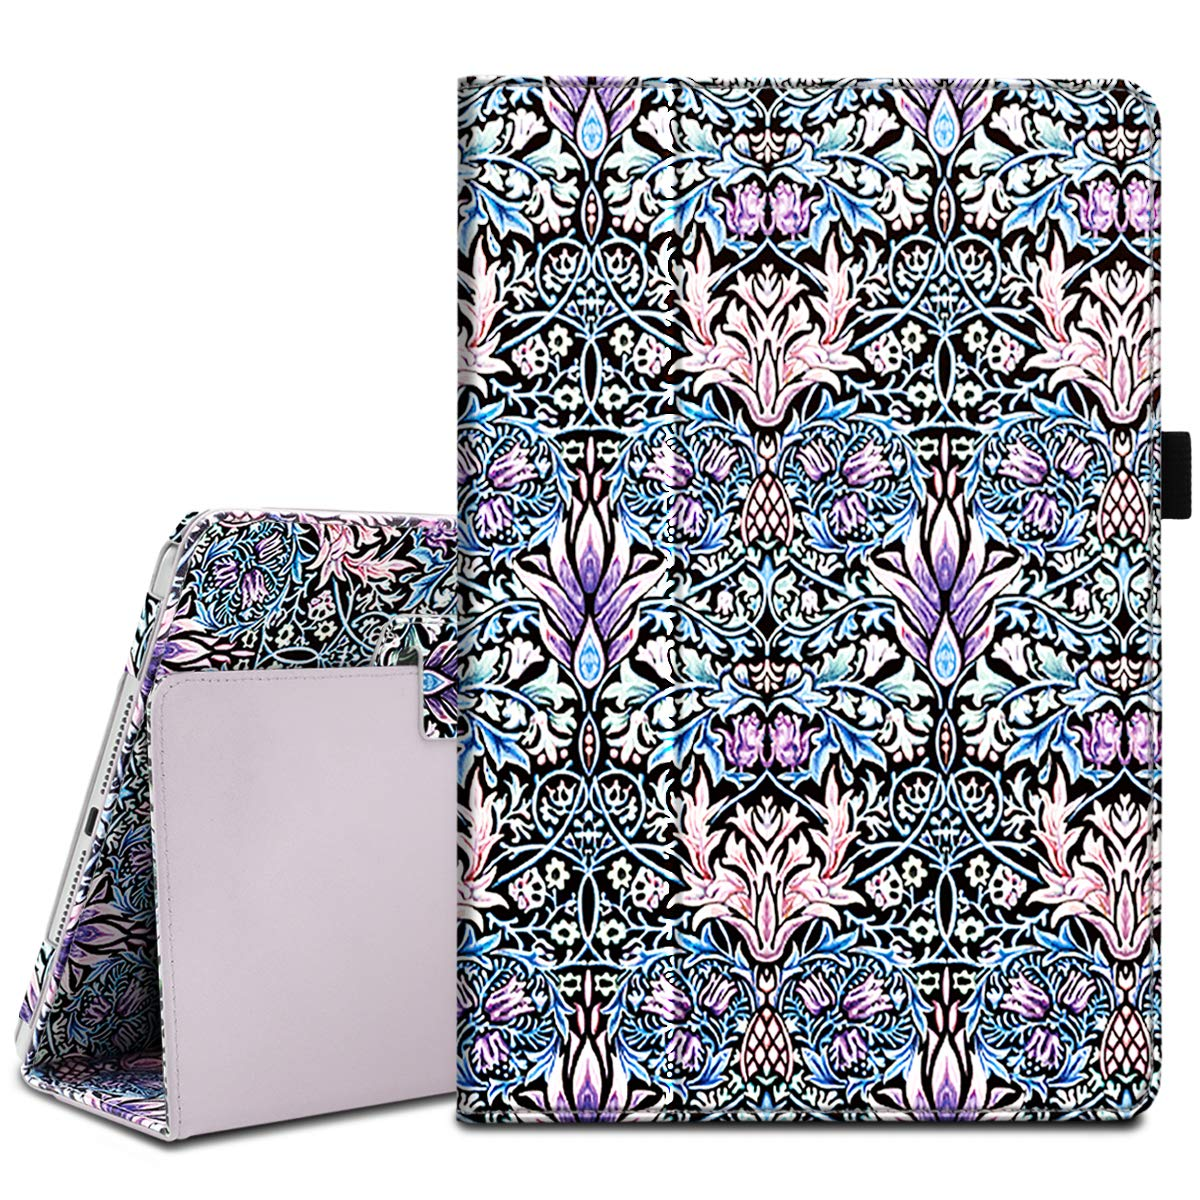 Fingic iPad 9.7 Case 2018/2017, iPad Air 2 Case, iPad Air Case, Floral Vine Pattern Design PU Leather Lightweight Folio Stand Smart Case with Auto Sleep Wake Protective Cover for iPad 9.7, Blue